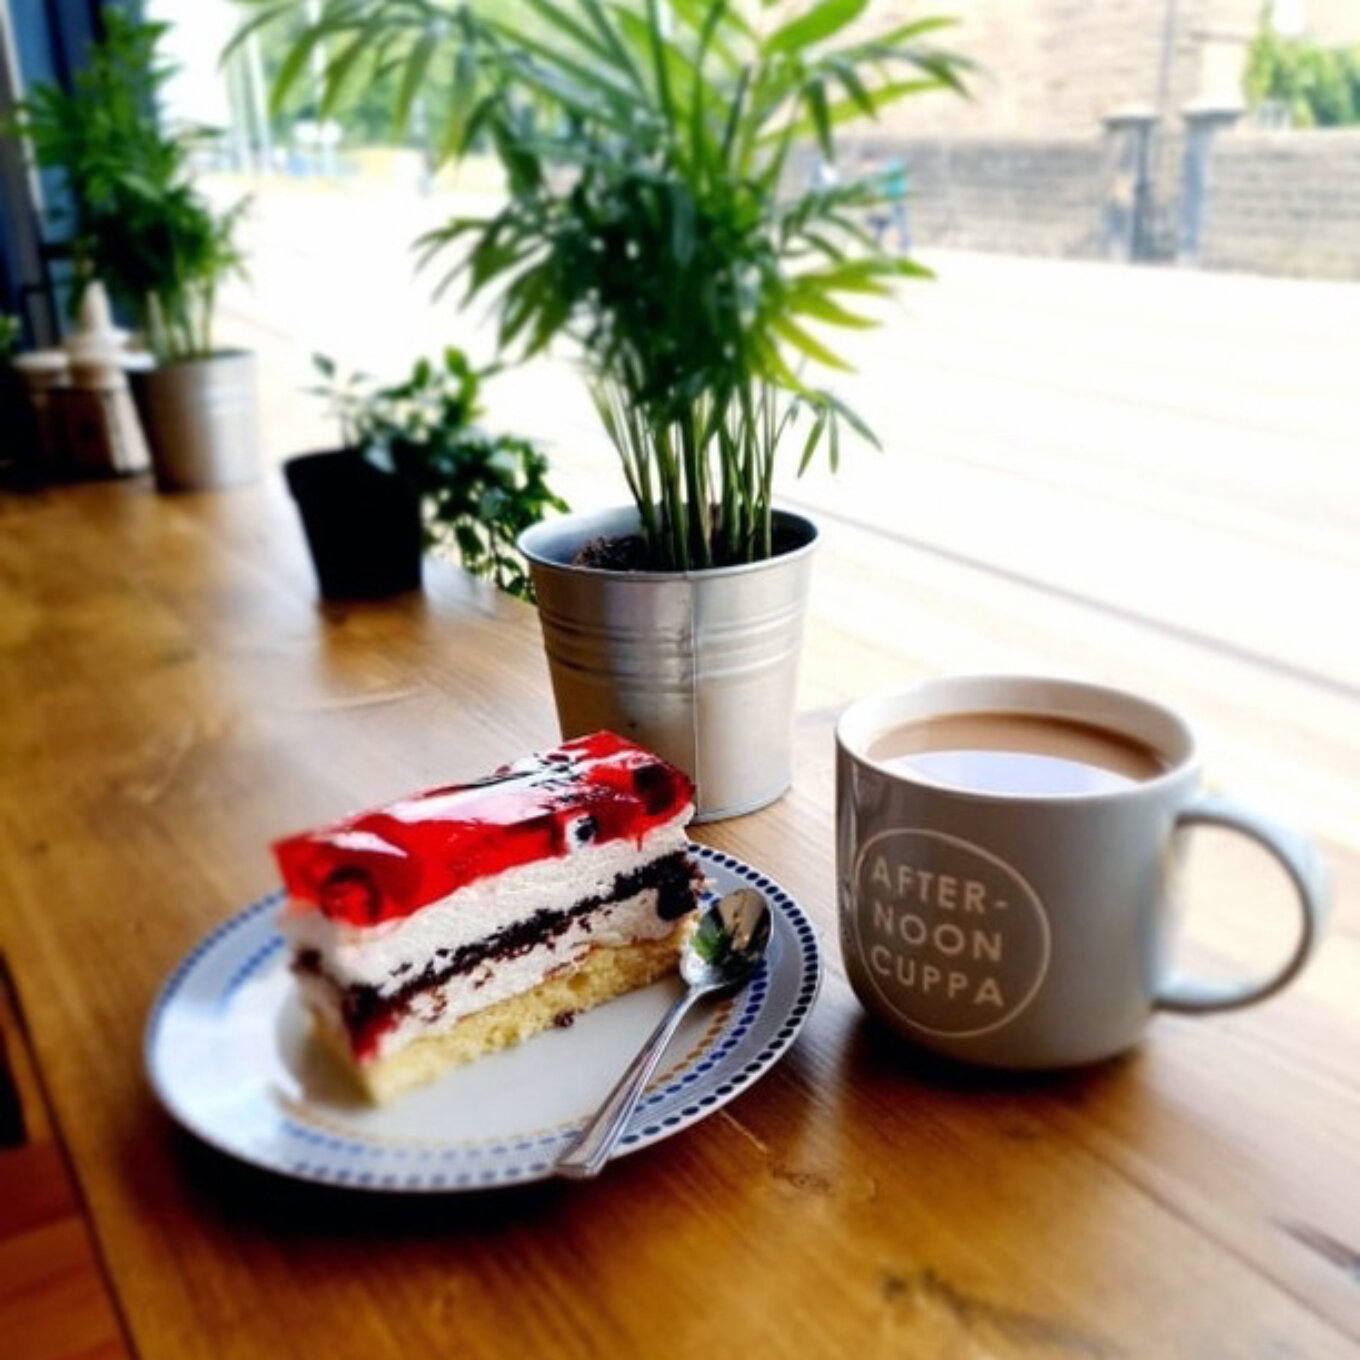 Mollys cafe and deli cake and coffee